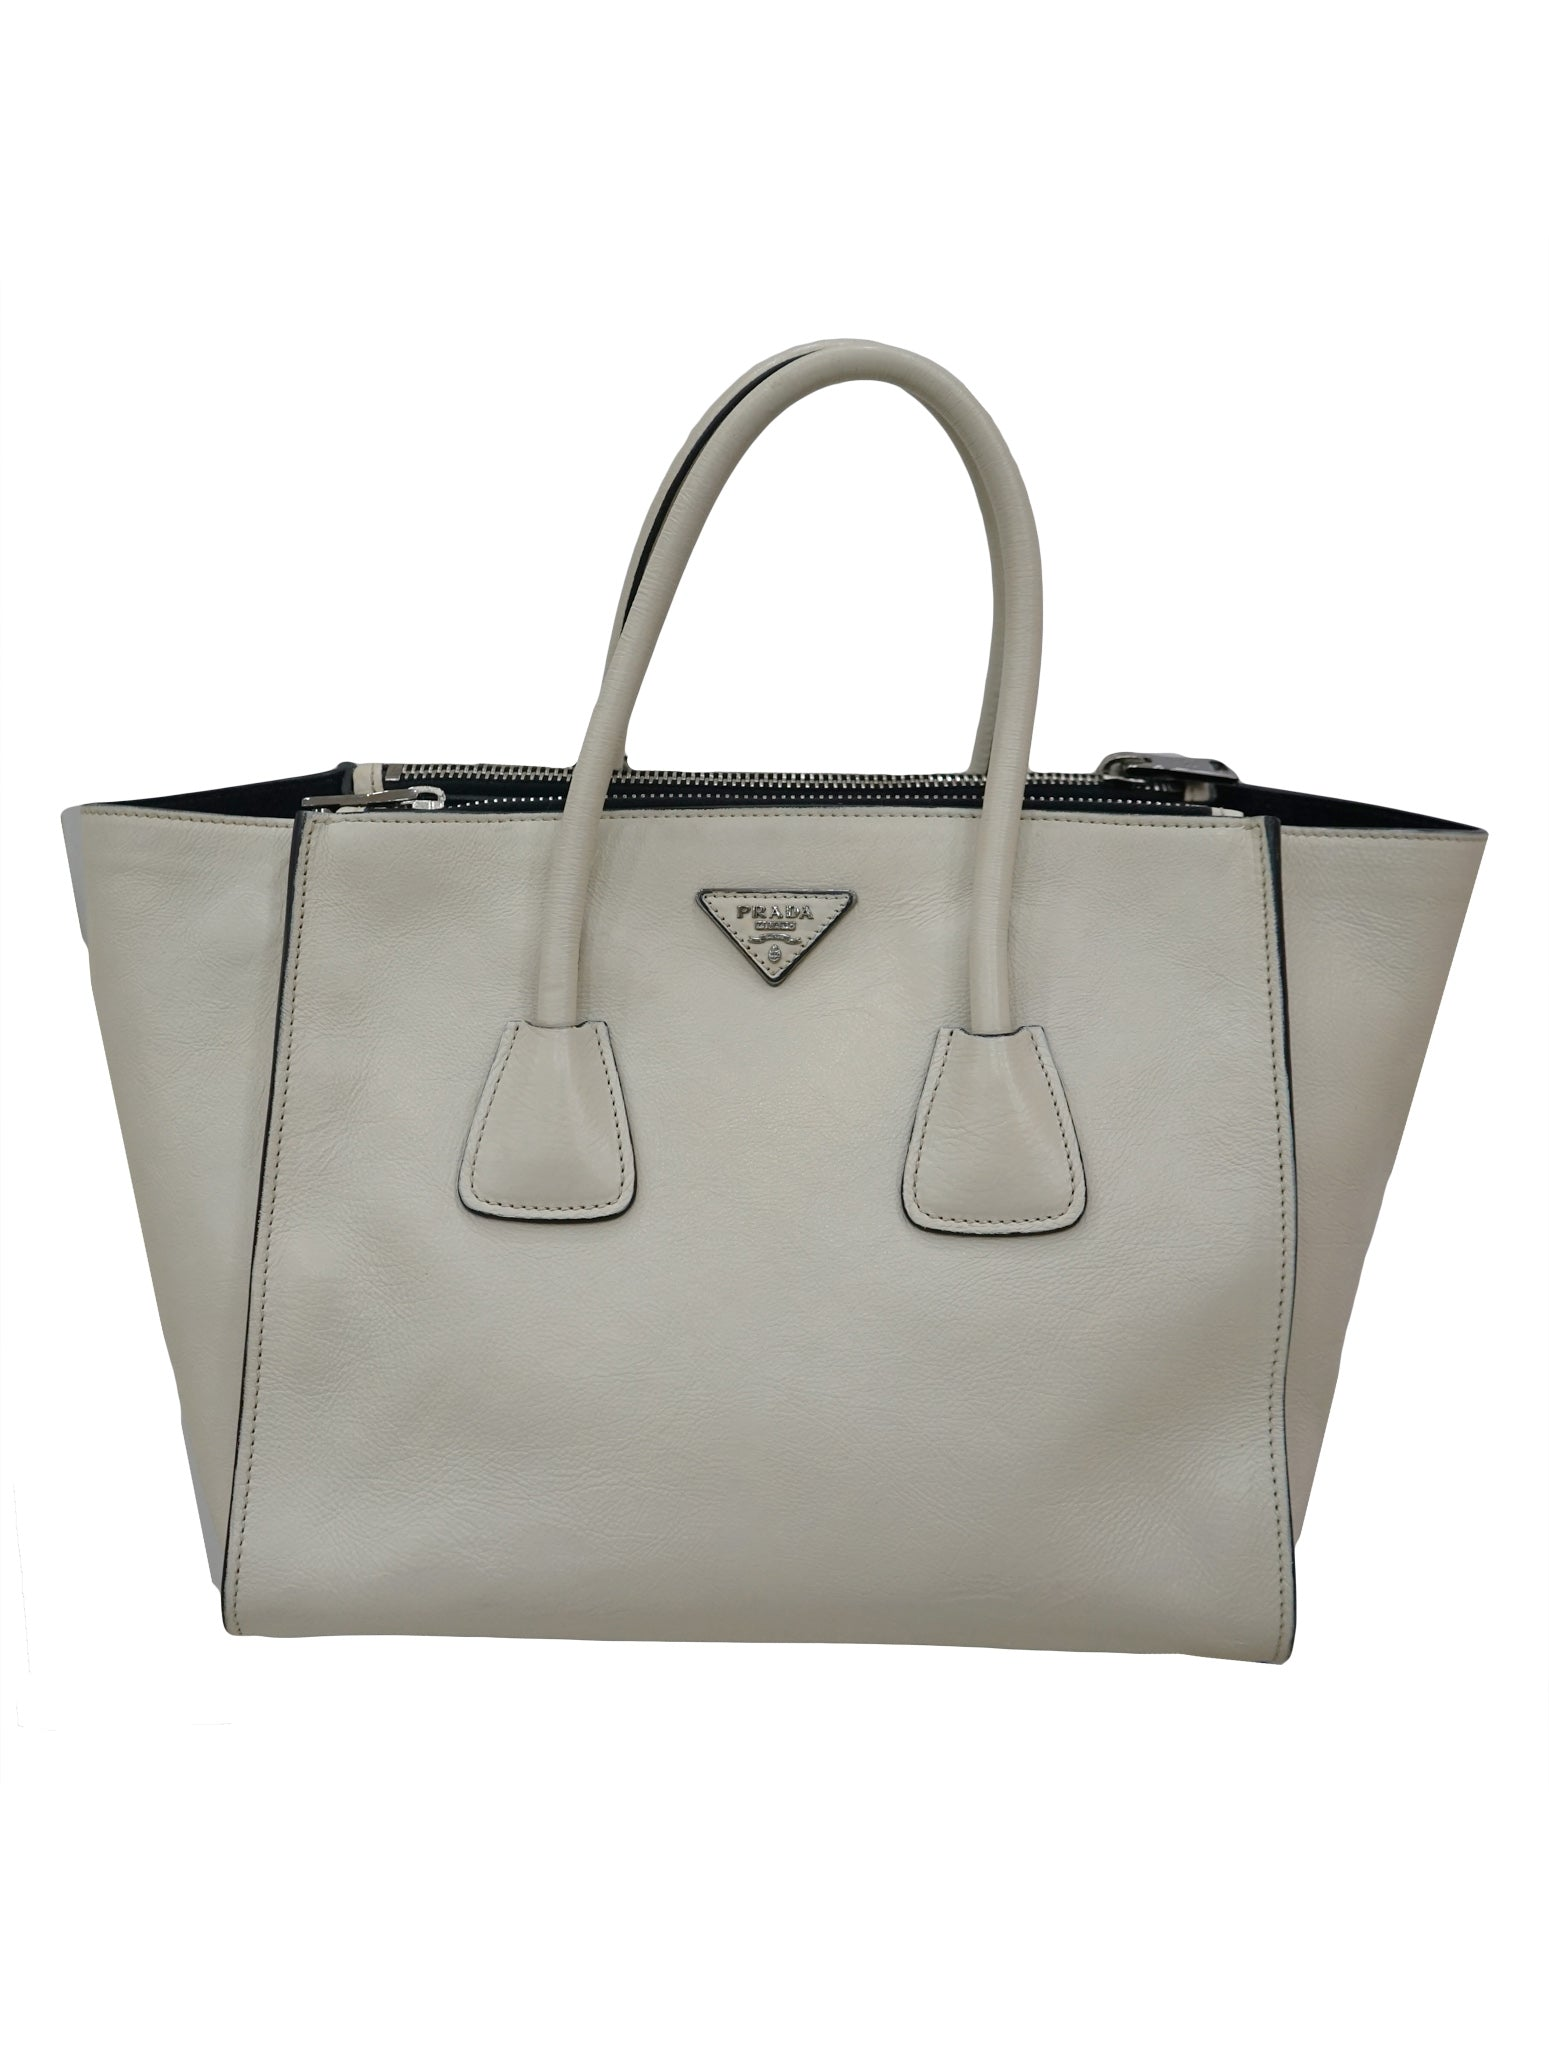 3202e02d98d1 PRADA OLIVIA'S GLACE CALF TWIN POCKET TOTE BAG – Kidsstyleforless